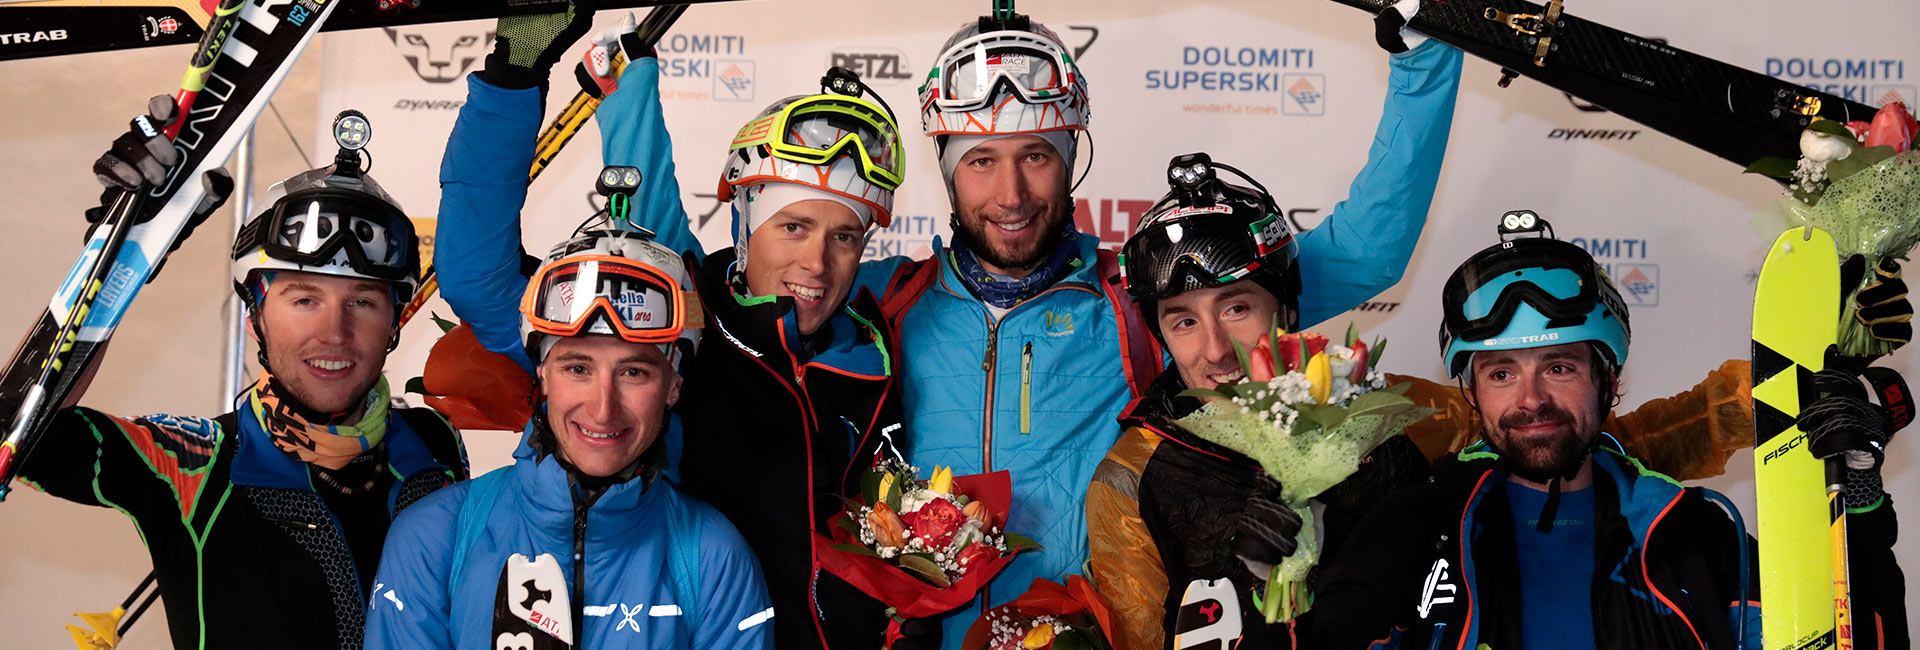 Sellaronda winners